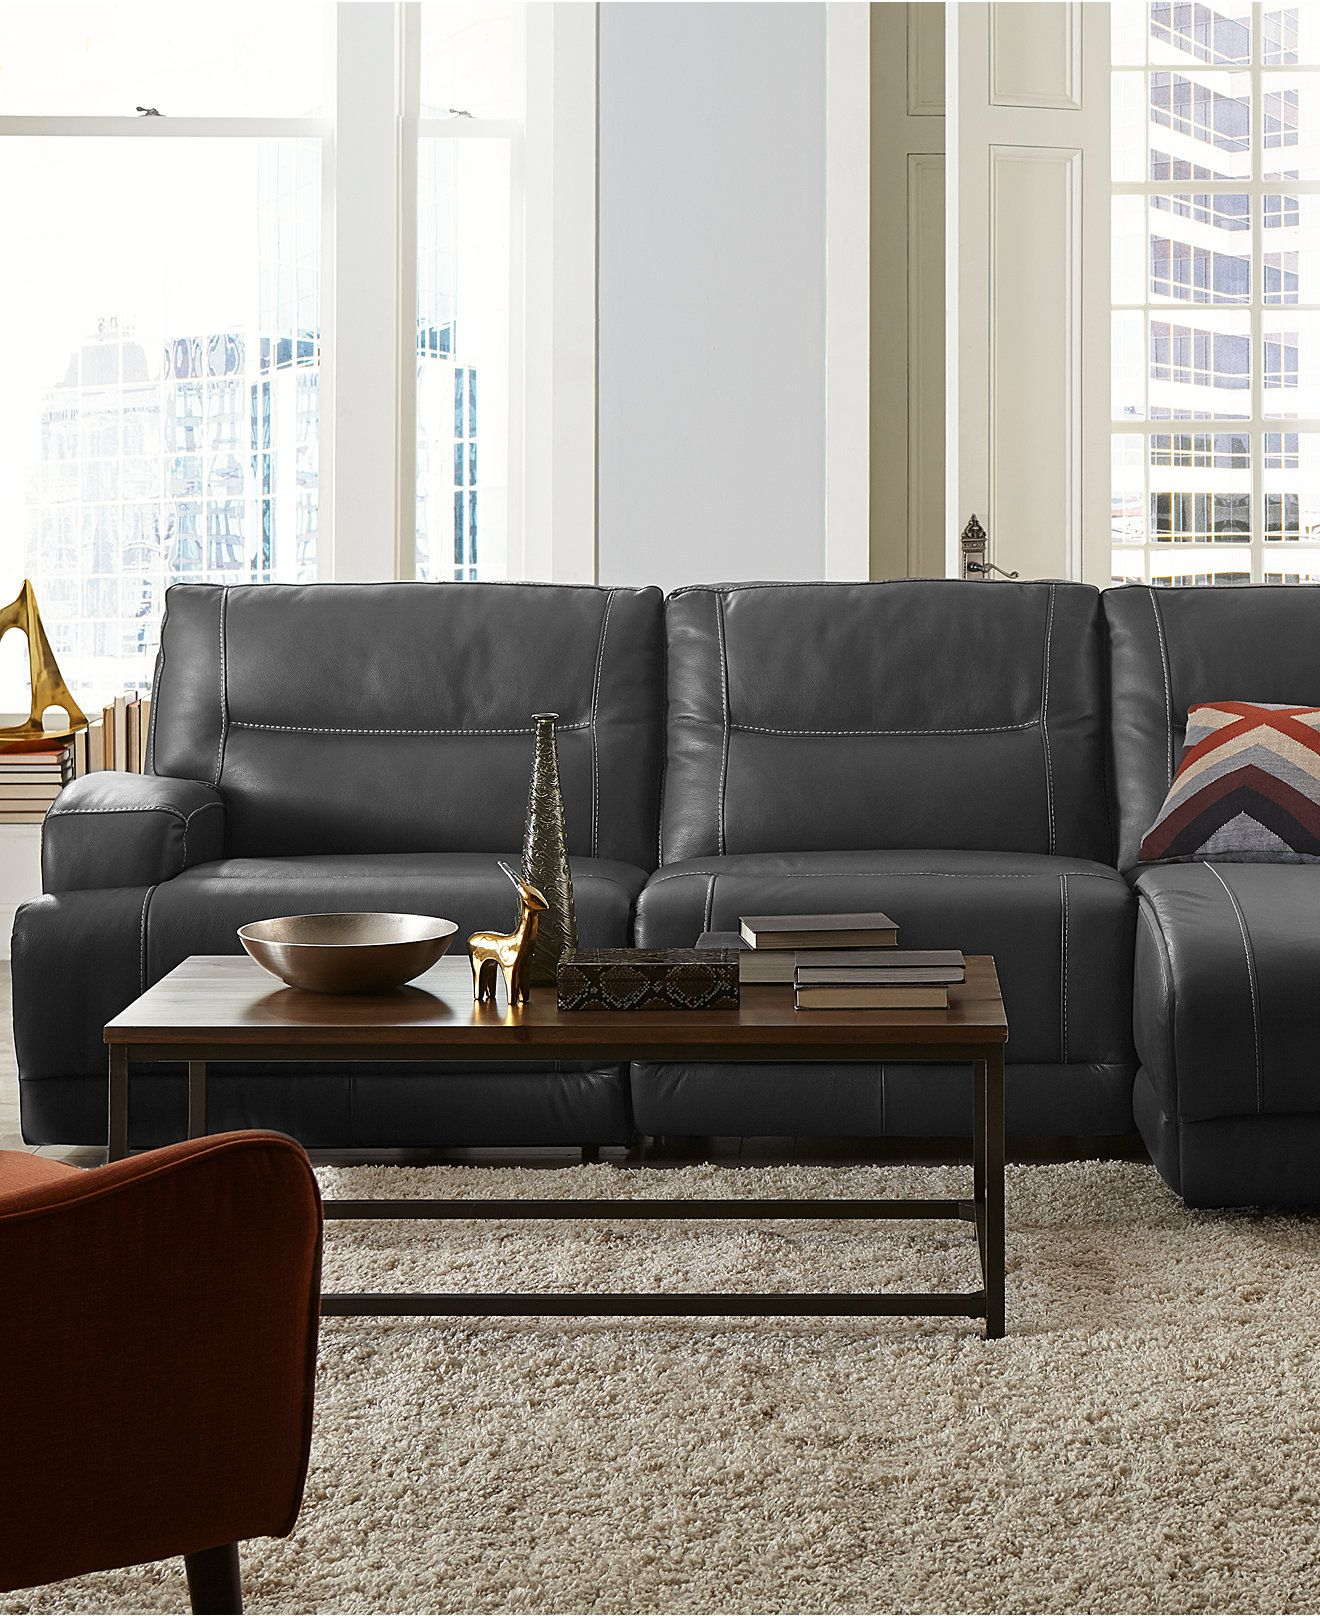 Vice Versa Living Room Furniture Sets U0026 Pieces Leather Modular